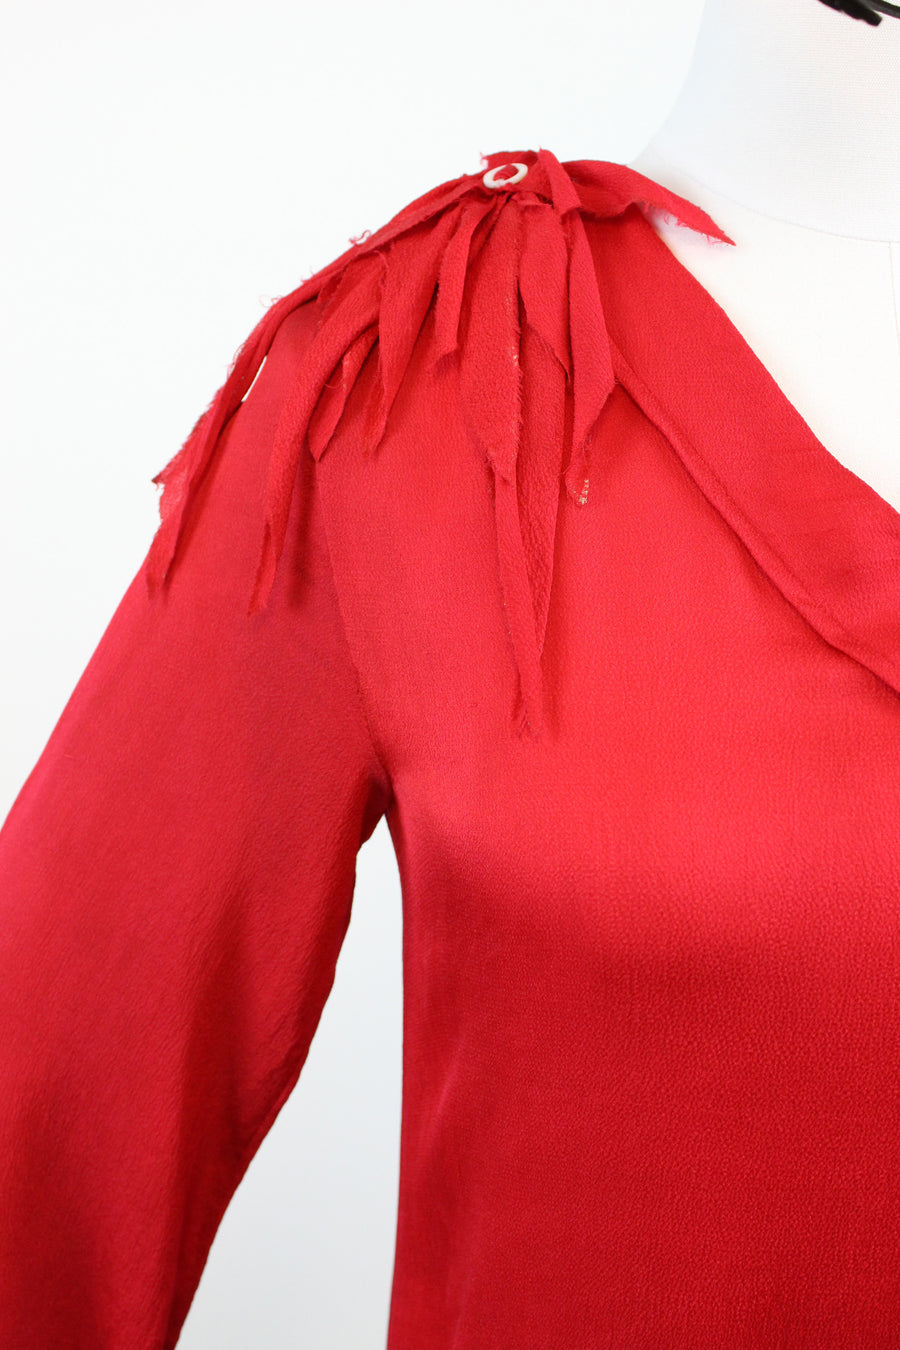 1920s red silk dress xs | vintage ruffled flapper dress | new fall